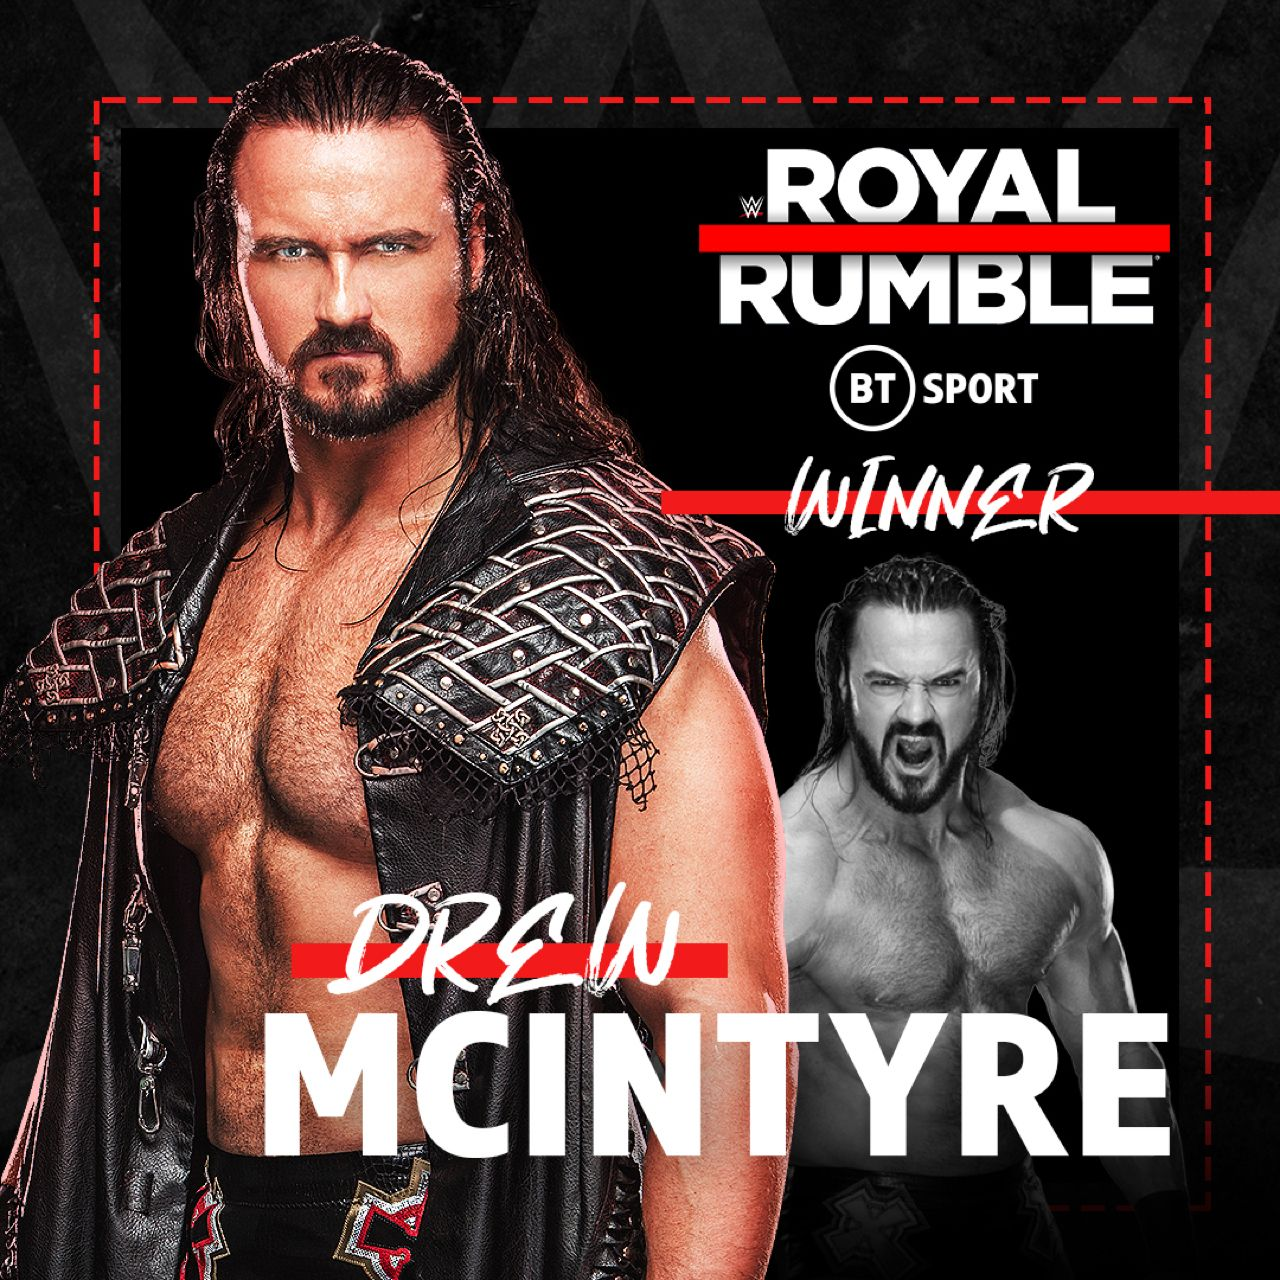 Pin by T.J. Waege on WWE Royal Rumble in 2020 (With images